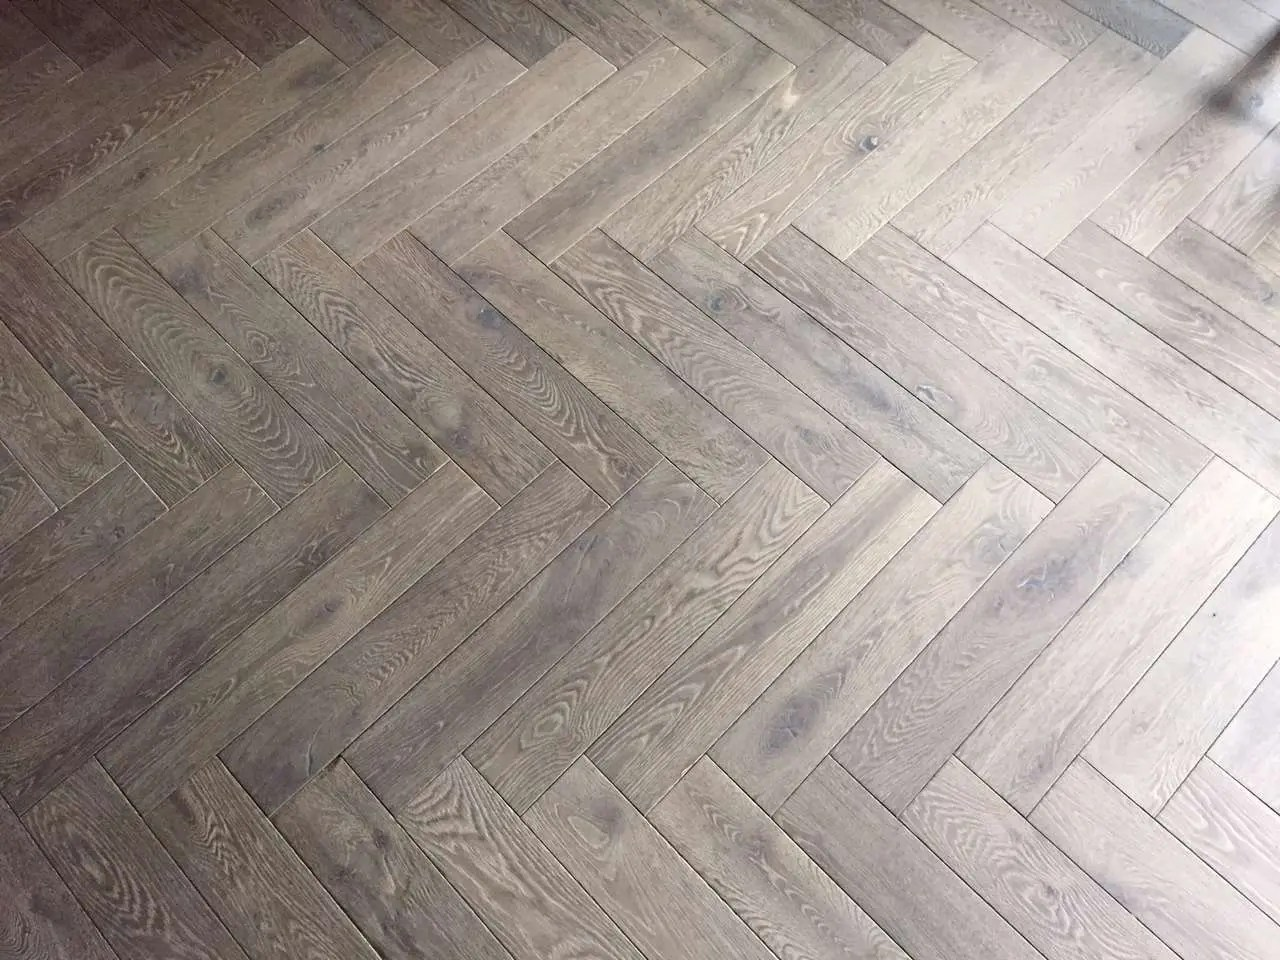 Fertigparkett Fischgrät Parquet Herringbone Parquet In Oak Solid Wood Or Multi Layer